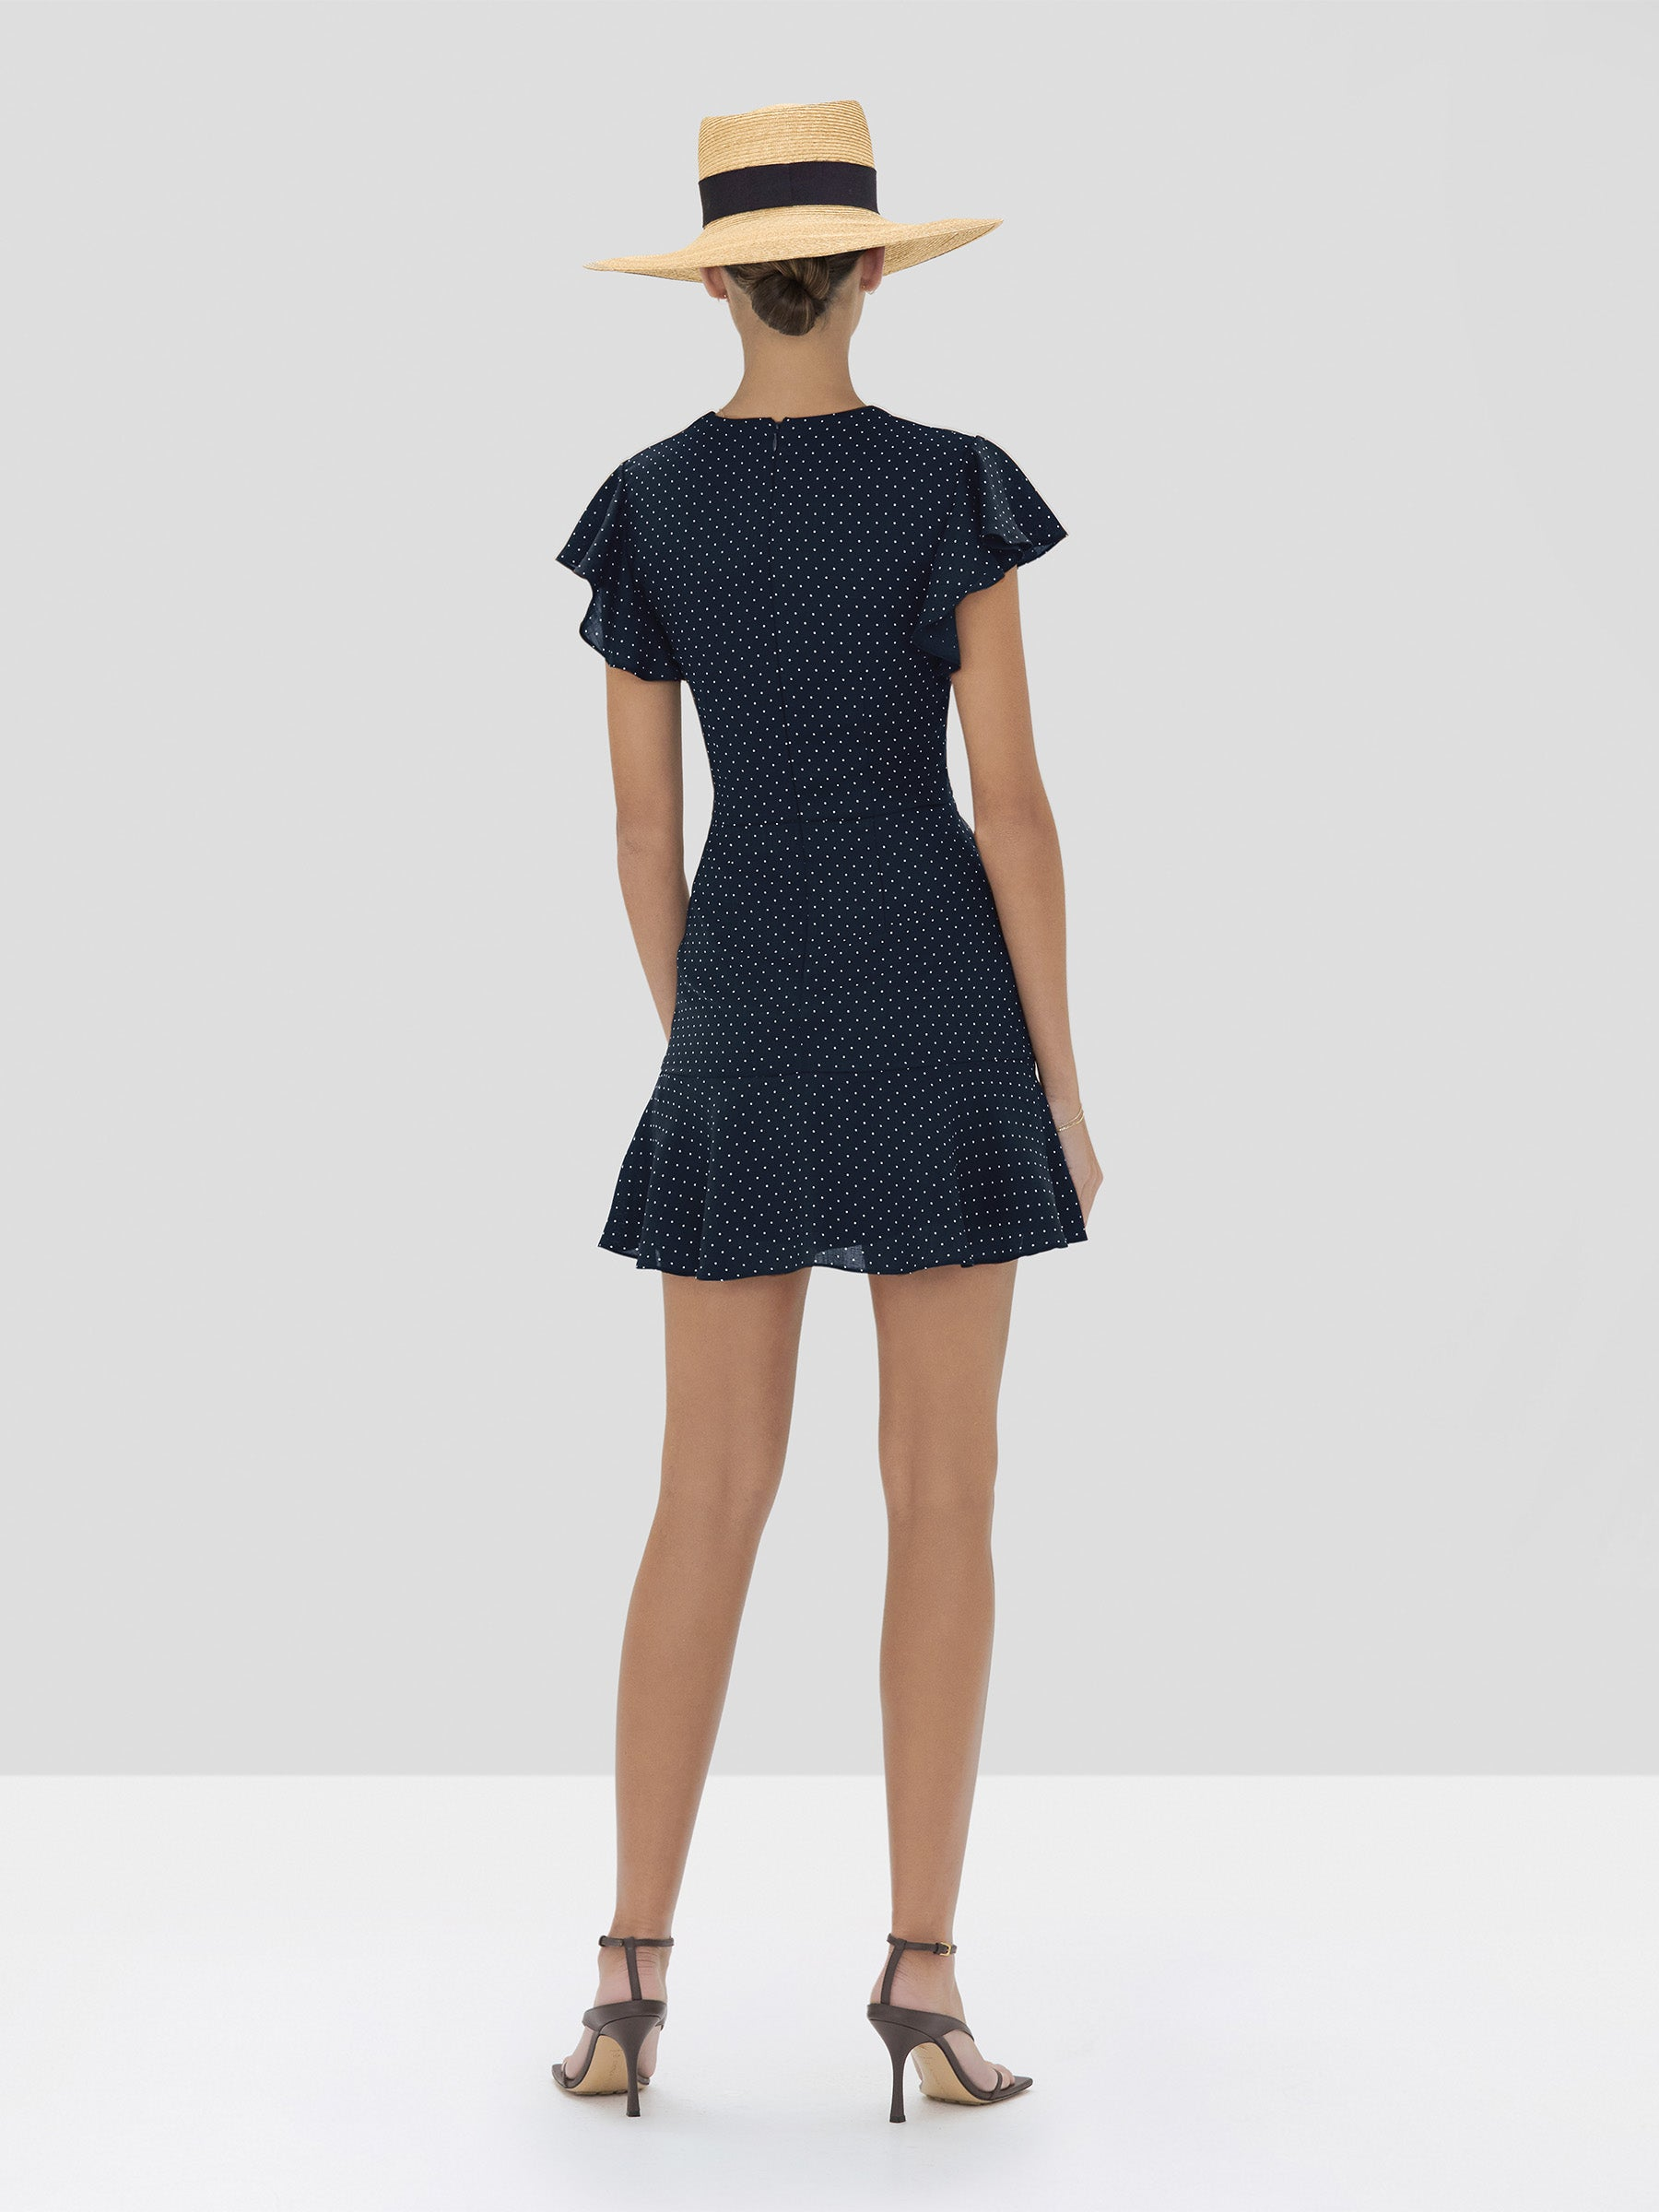 Alexis Benza Dress in Navy Dot Linen from the Spring Summer 2020 Collection - Rear View